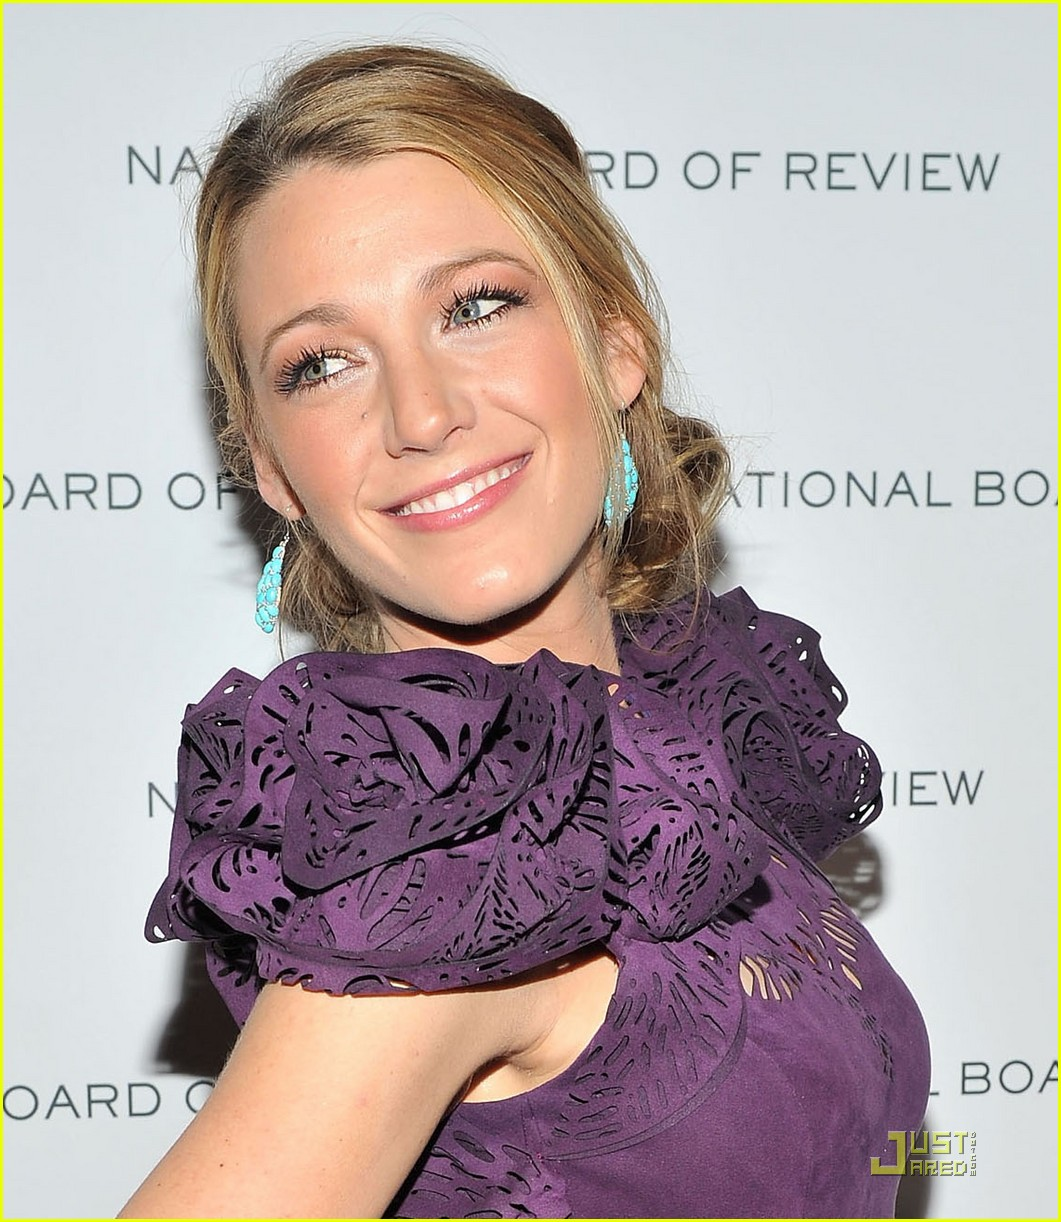 blake lively national board of review 042510078